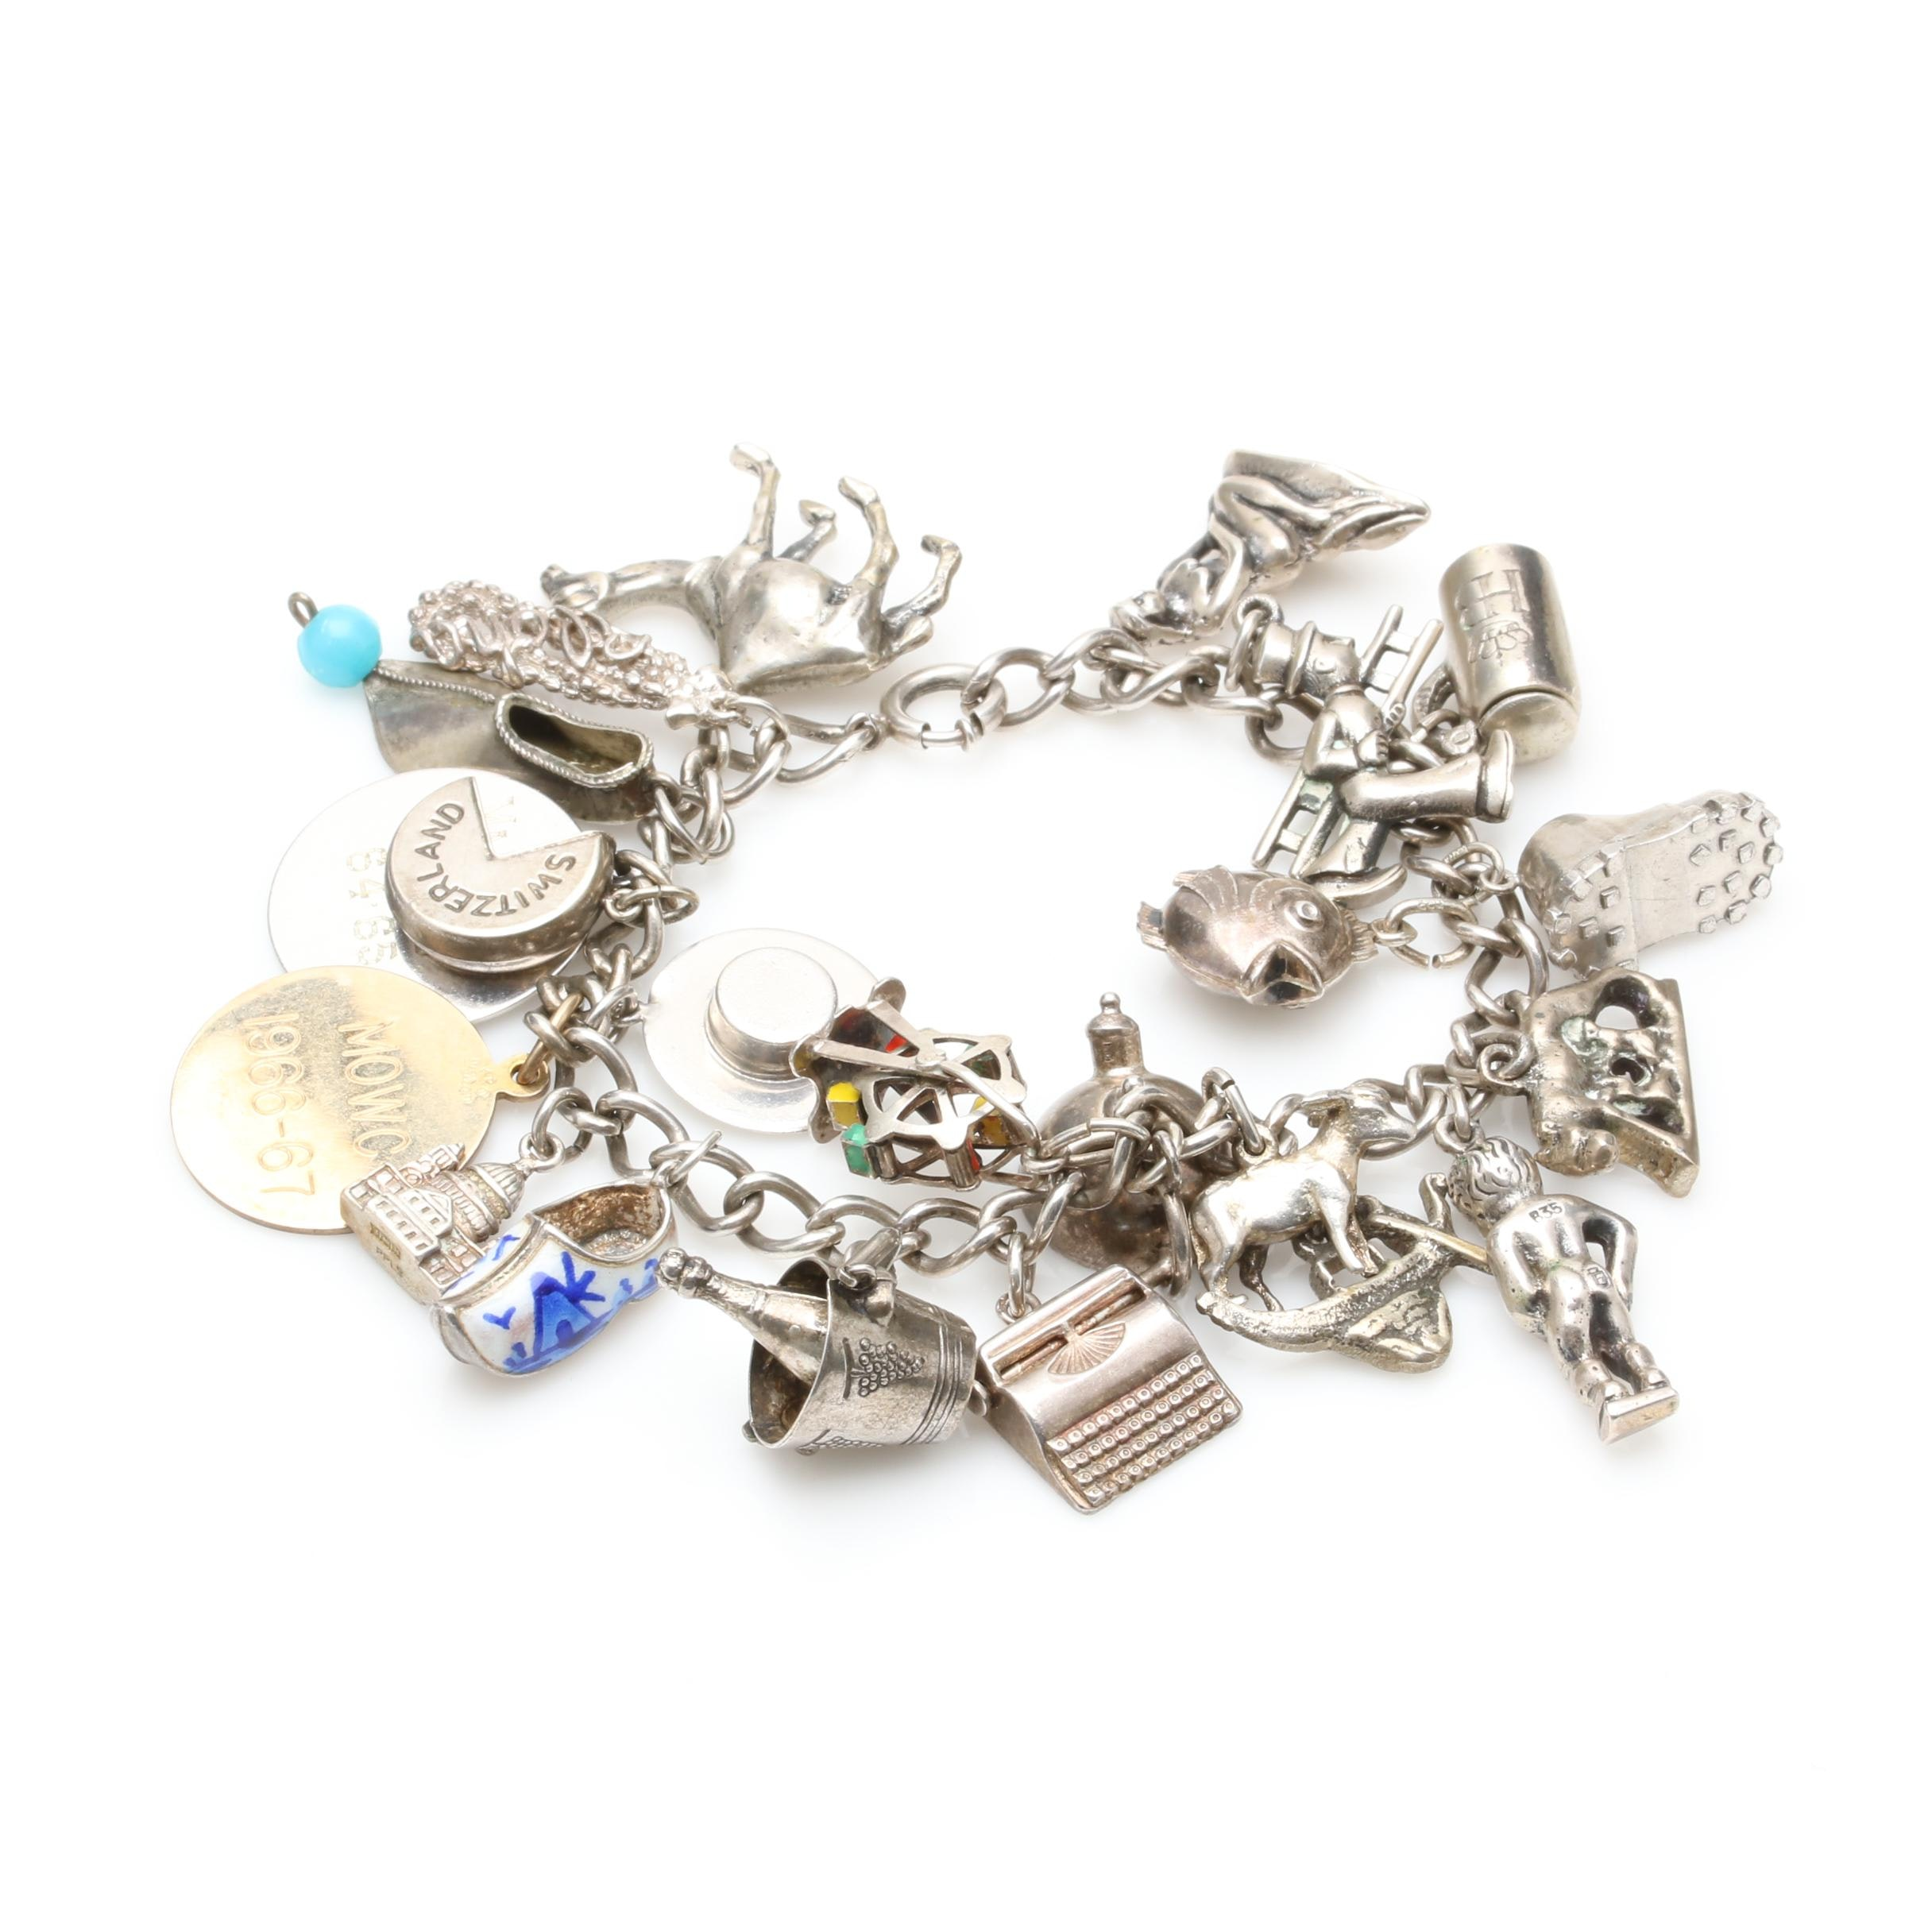 Vintage Sterling Silver Charm Bracelet Including Glass and 800 Silver